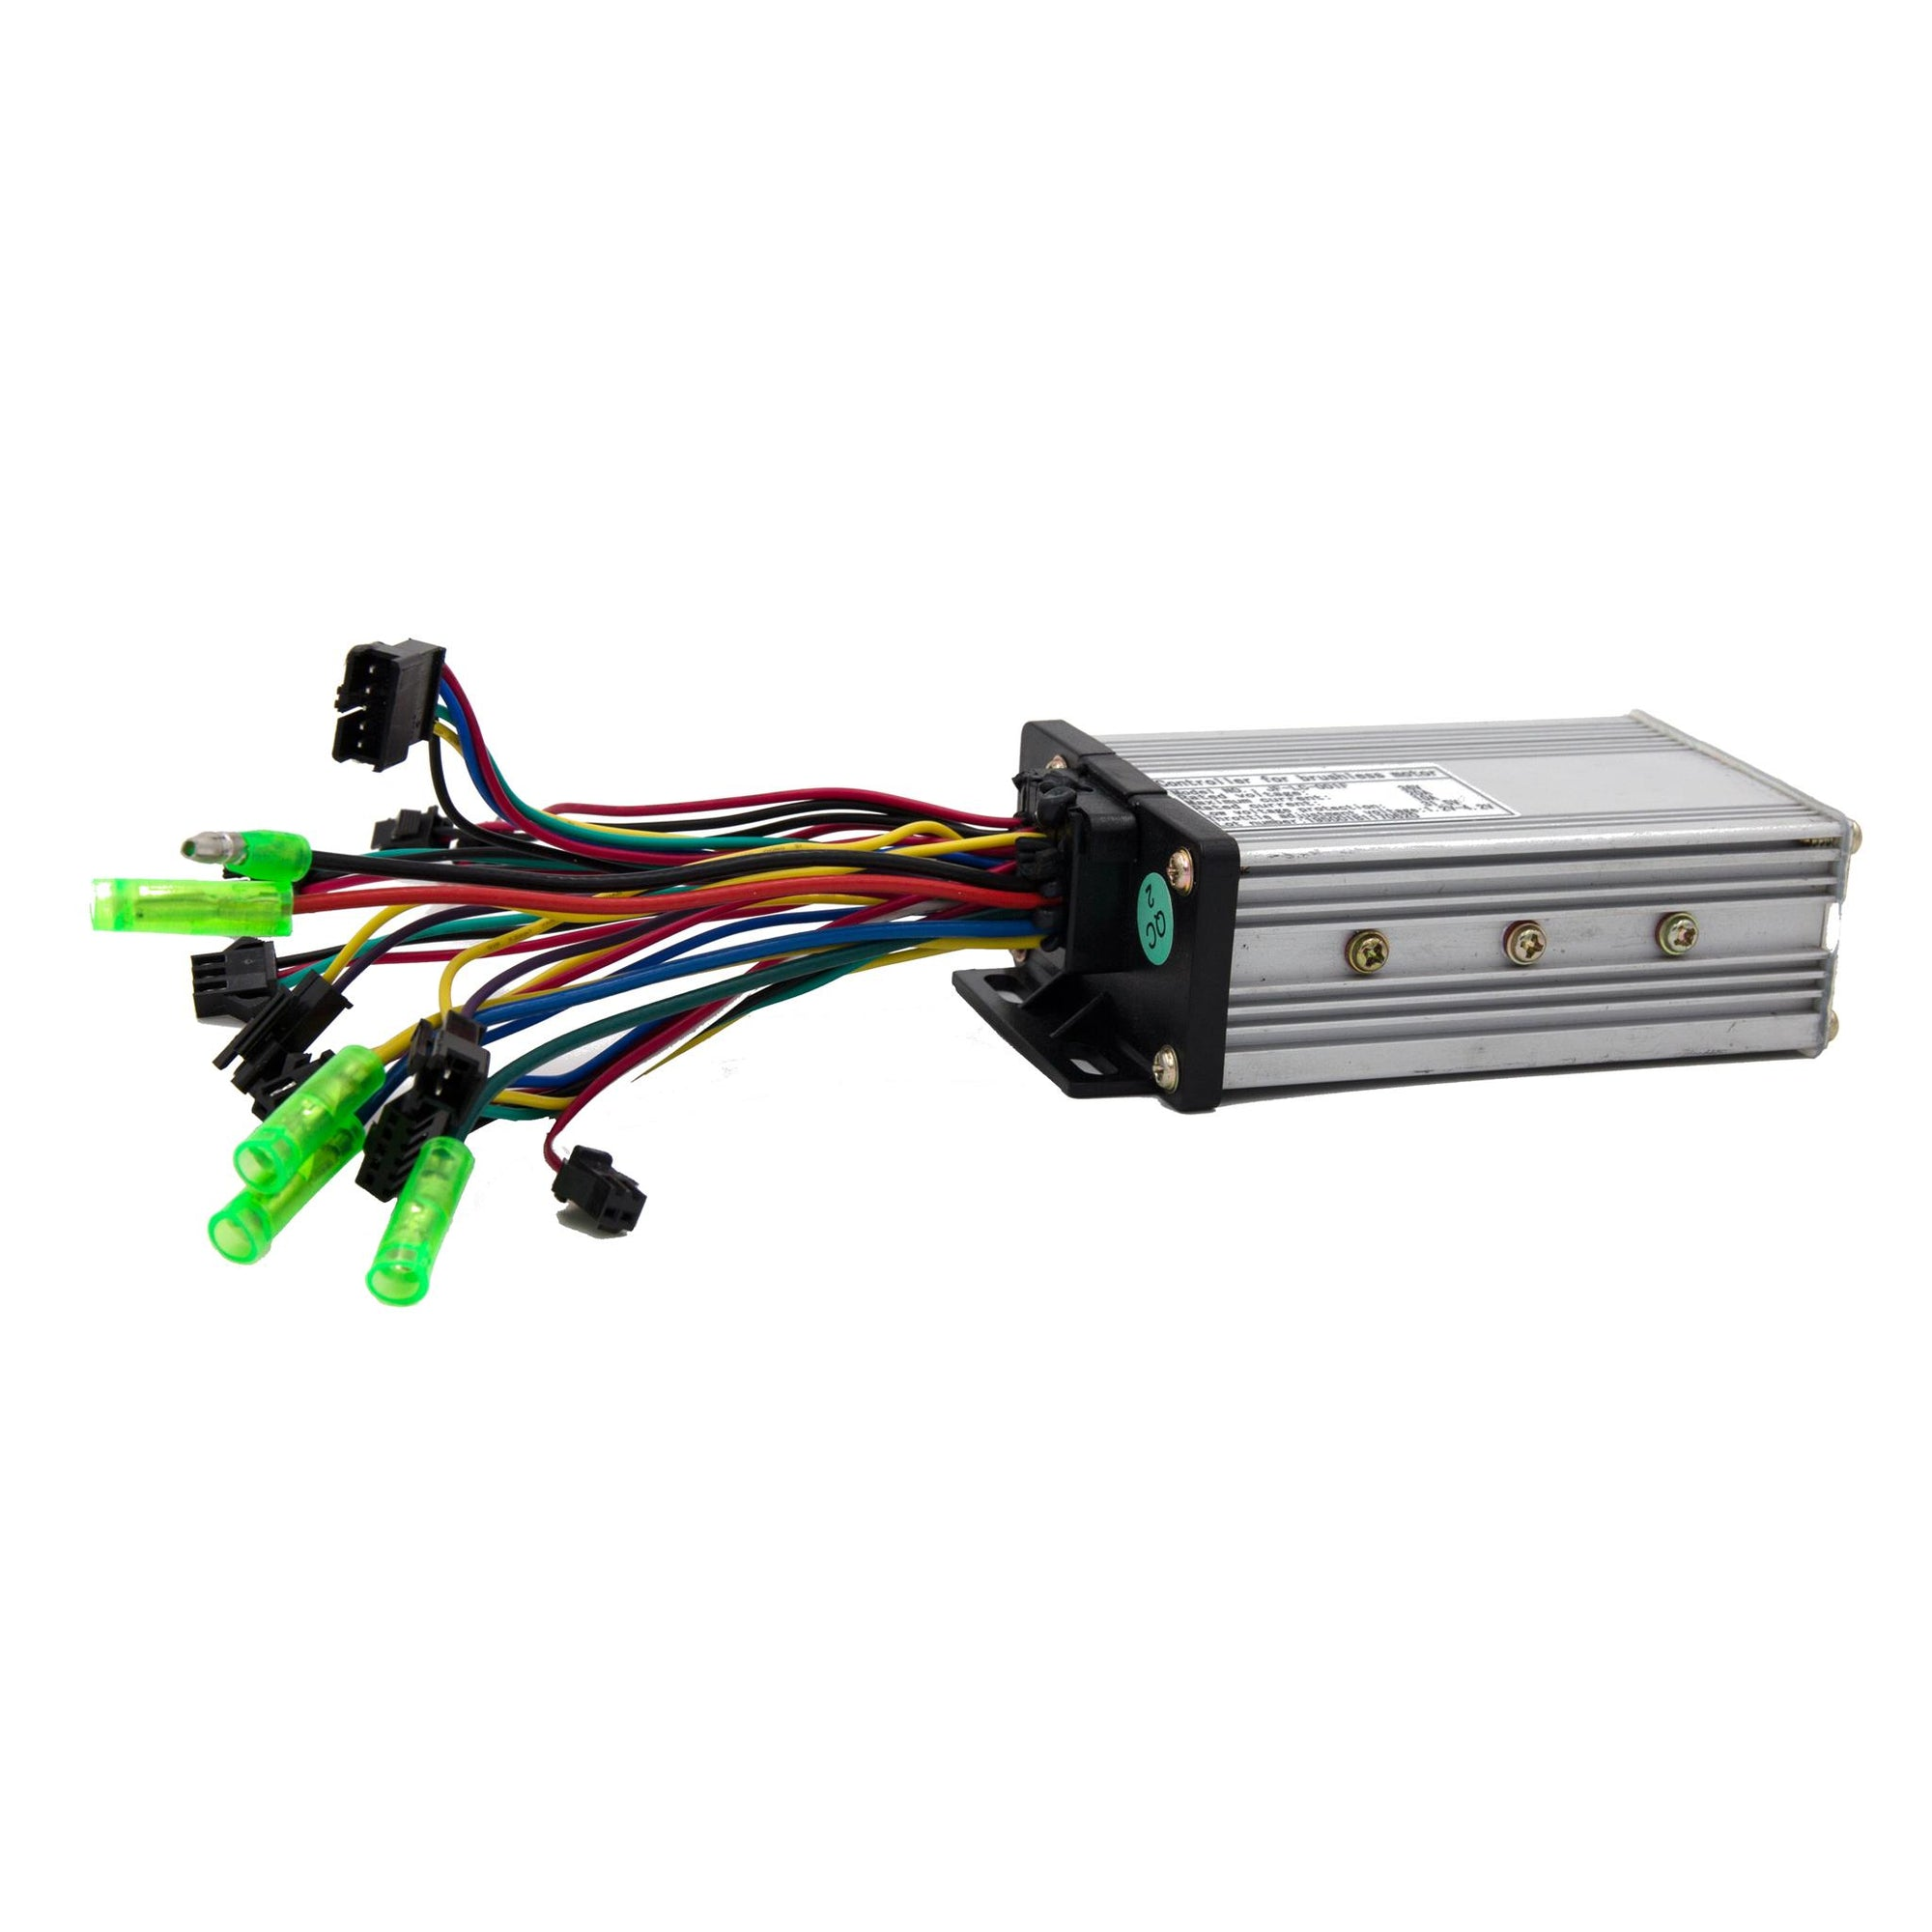 Brushless Sine Wave Controller 36v 48v E Bike Hub Motor For Uni Moke Bldc Electric